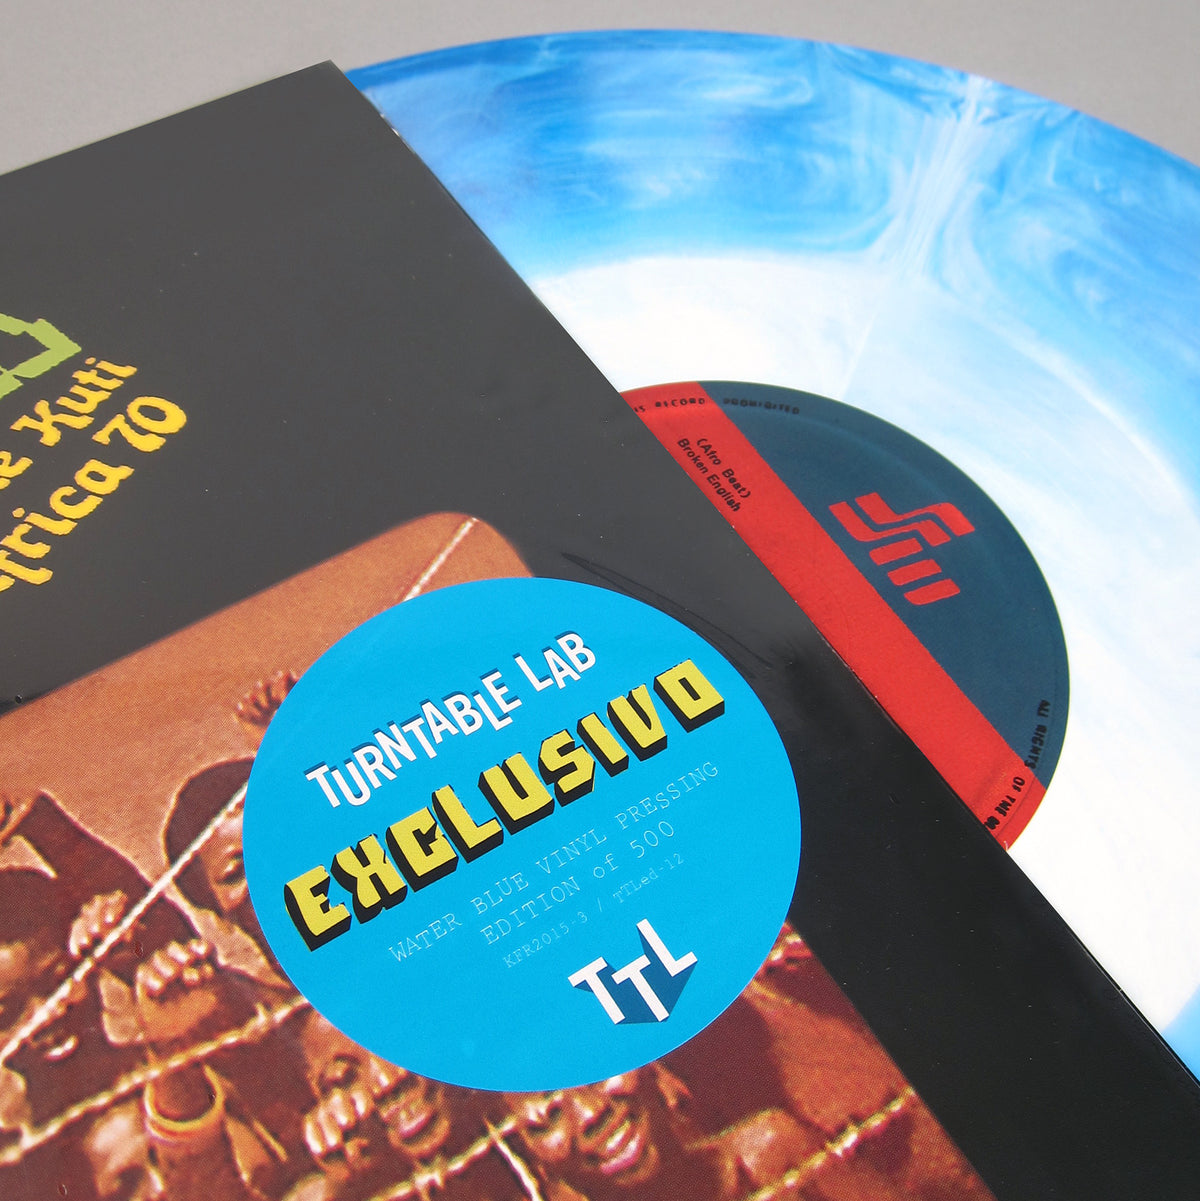 Fela Ransome Kuti & Africa 70: Expensive Shit (Colored Vinyl) Vinyl LP - Turntable Lab Exclusive detail